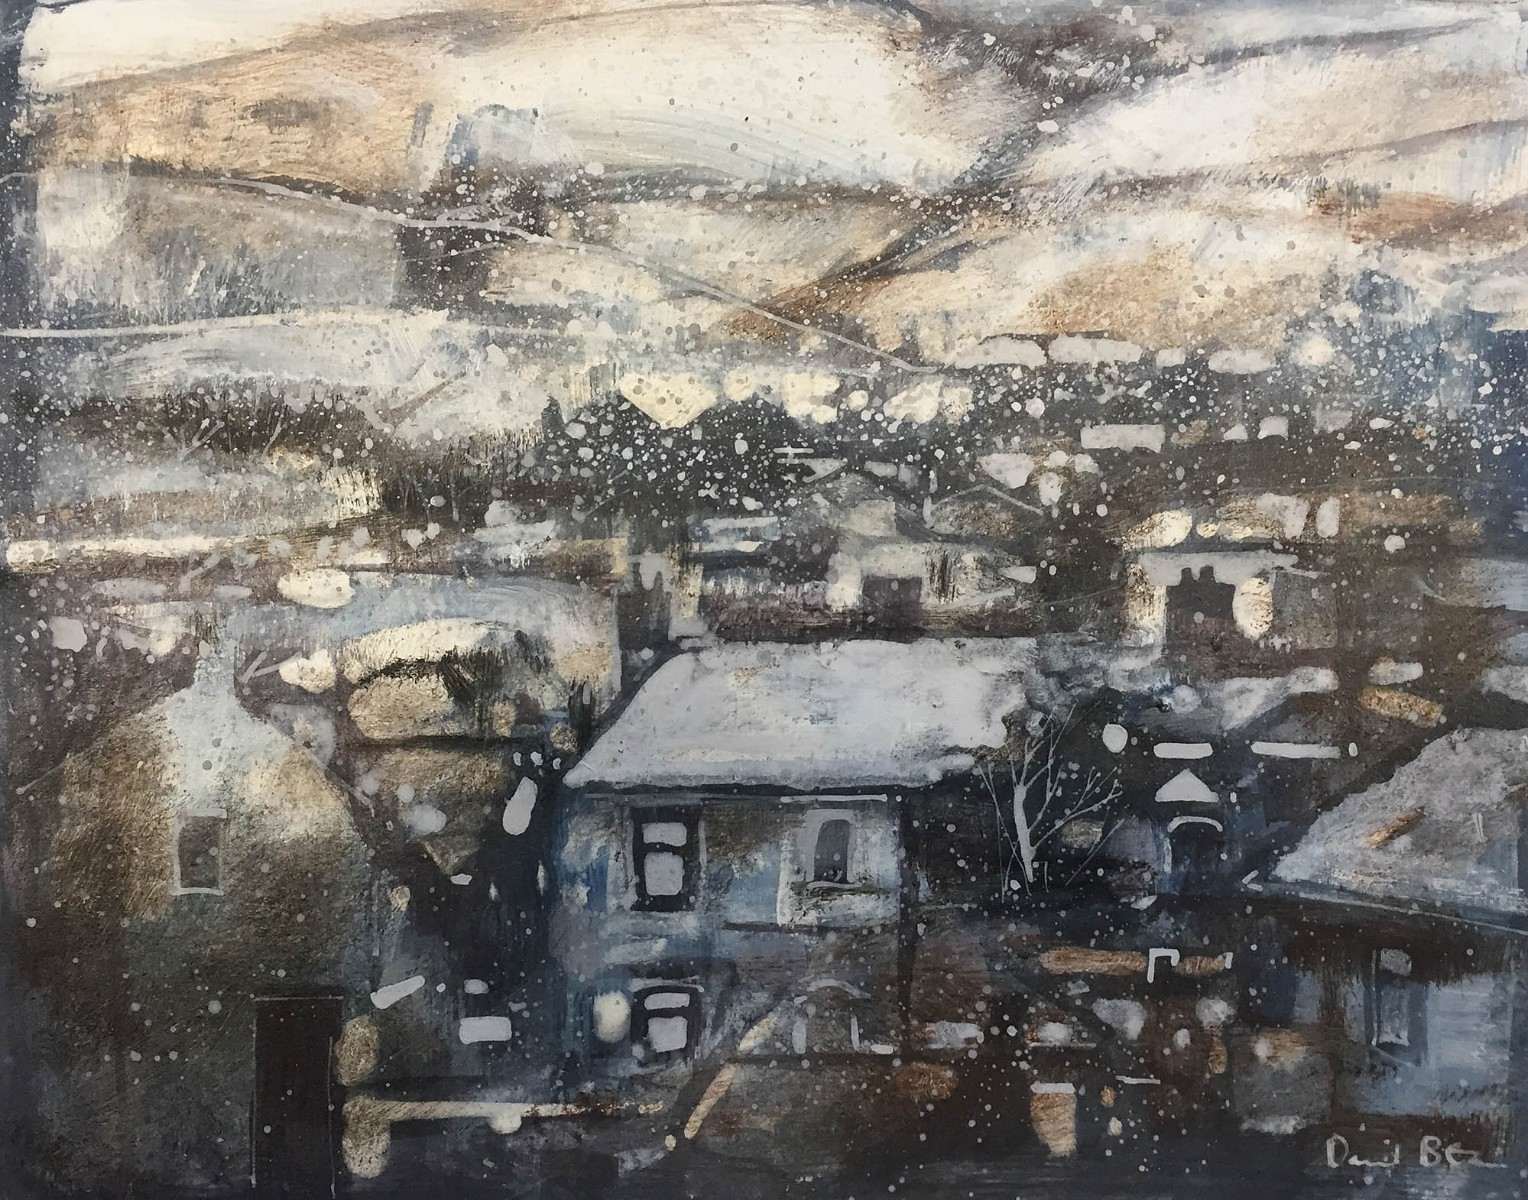 Settling in Town by David Bez